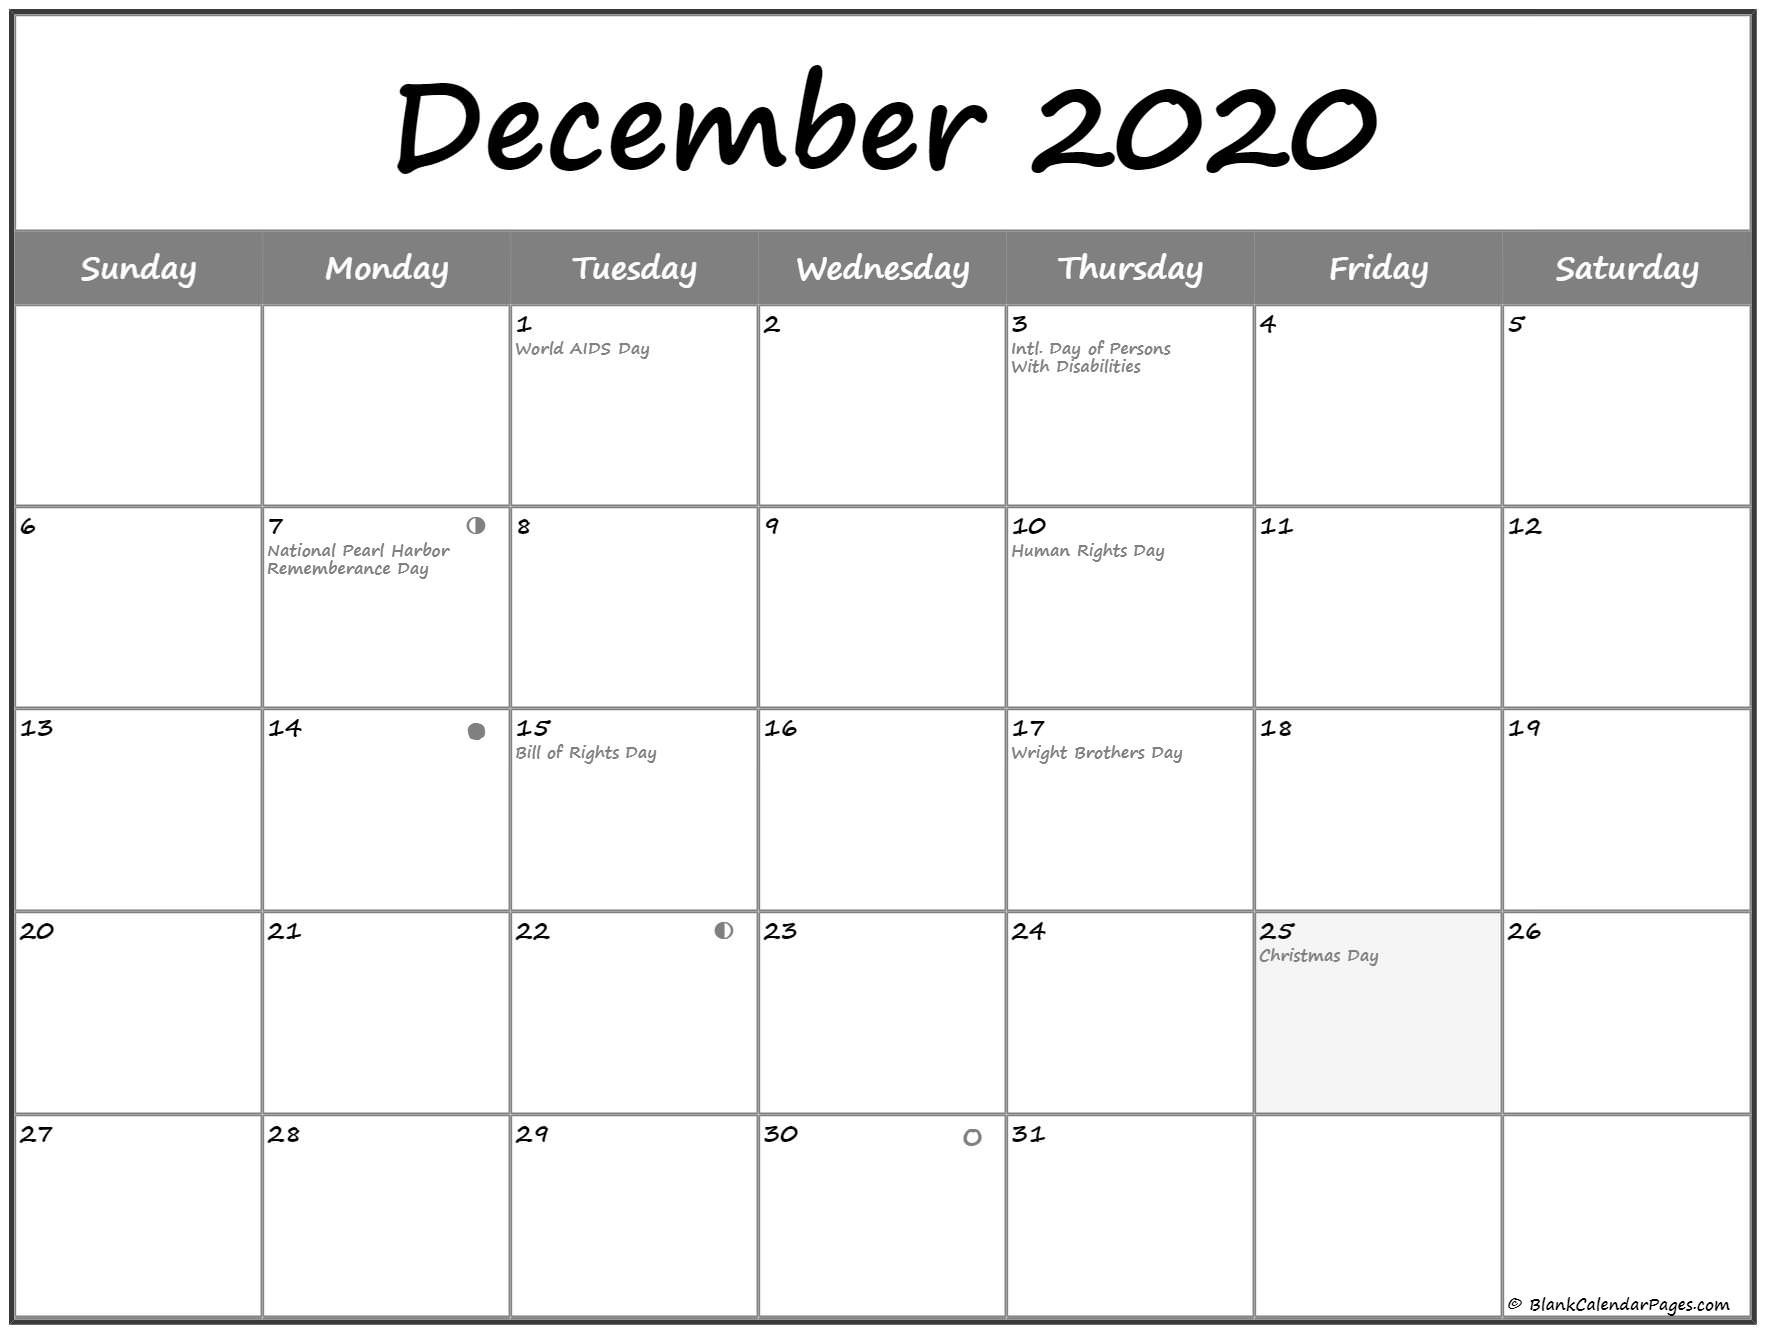 December 2020 Lunar Calendar | Moon Phase Calendar  Lunar And Solar Calendar 2020